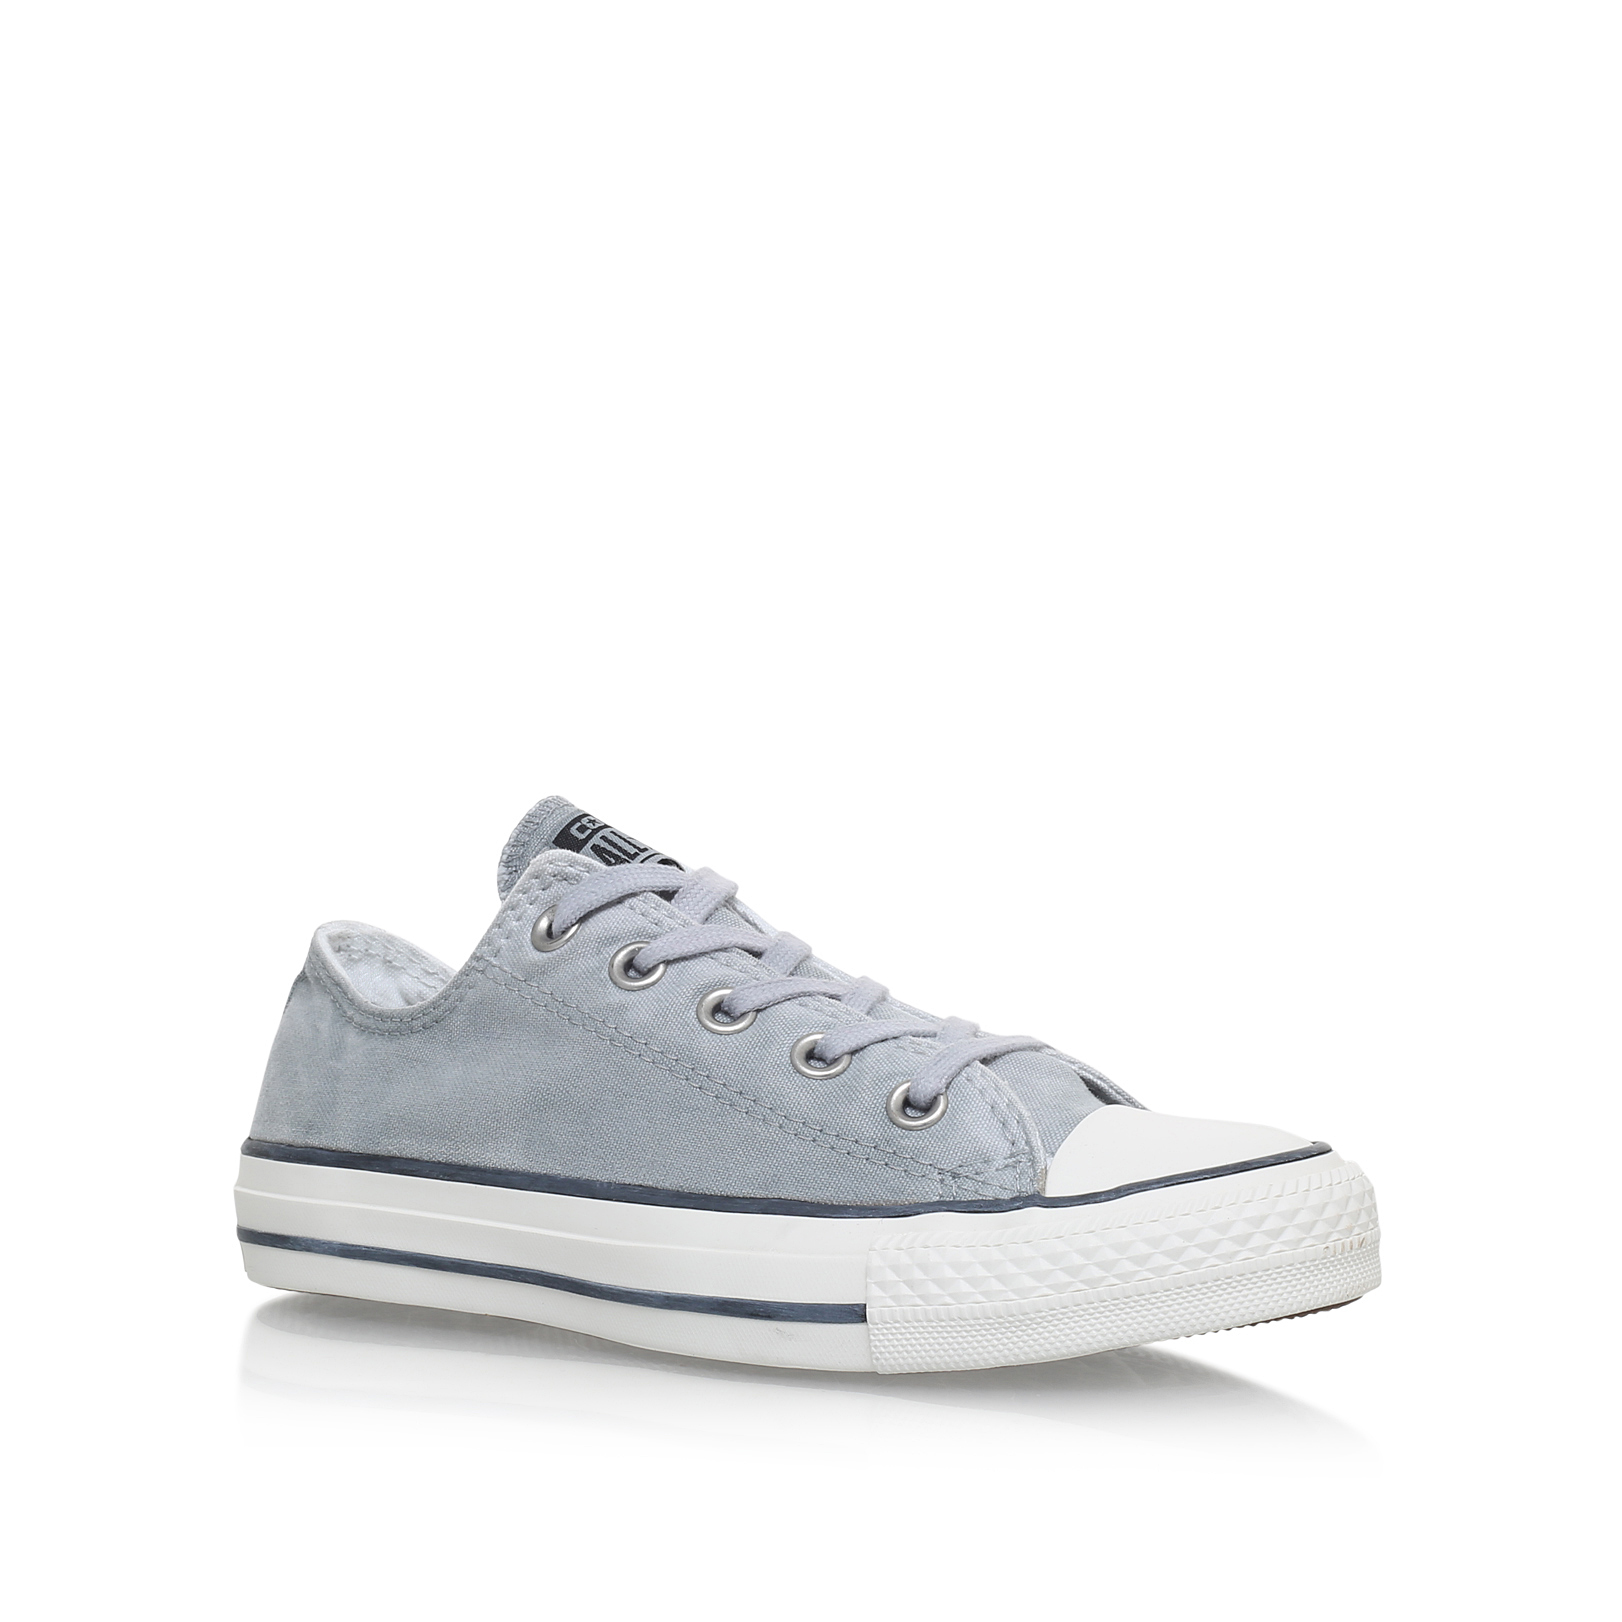 converse all star low top converse sneakers. Black Bedroom Furniture Sets. Home Design Ideas